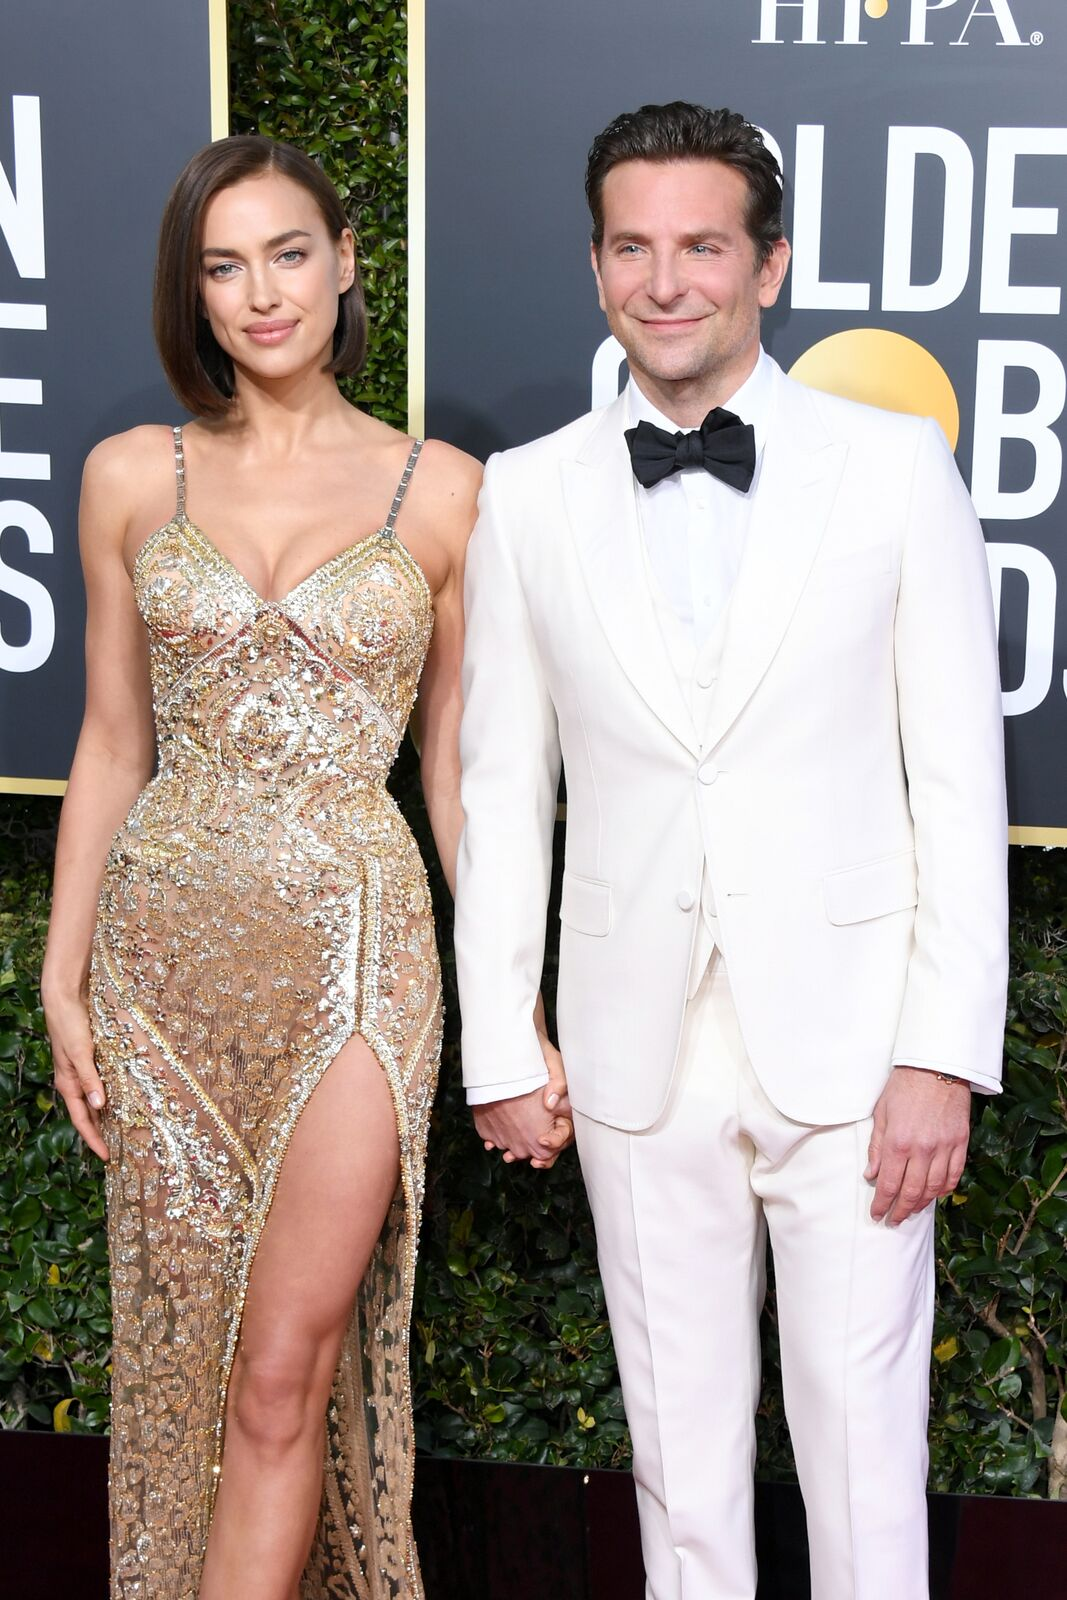 Irina Shayk and Bradley Cooper attend the 76th Annual Golden Globe Awards at The Beverly Hilton Hotel on January 6, 2019 in Beverly Hills, California | Photo: Getty Images